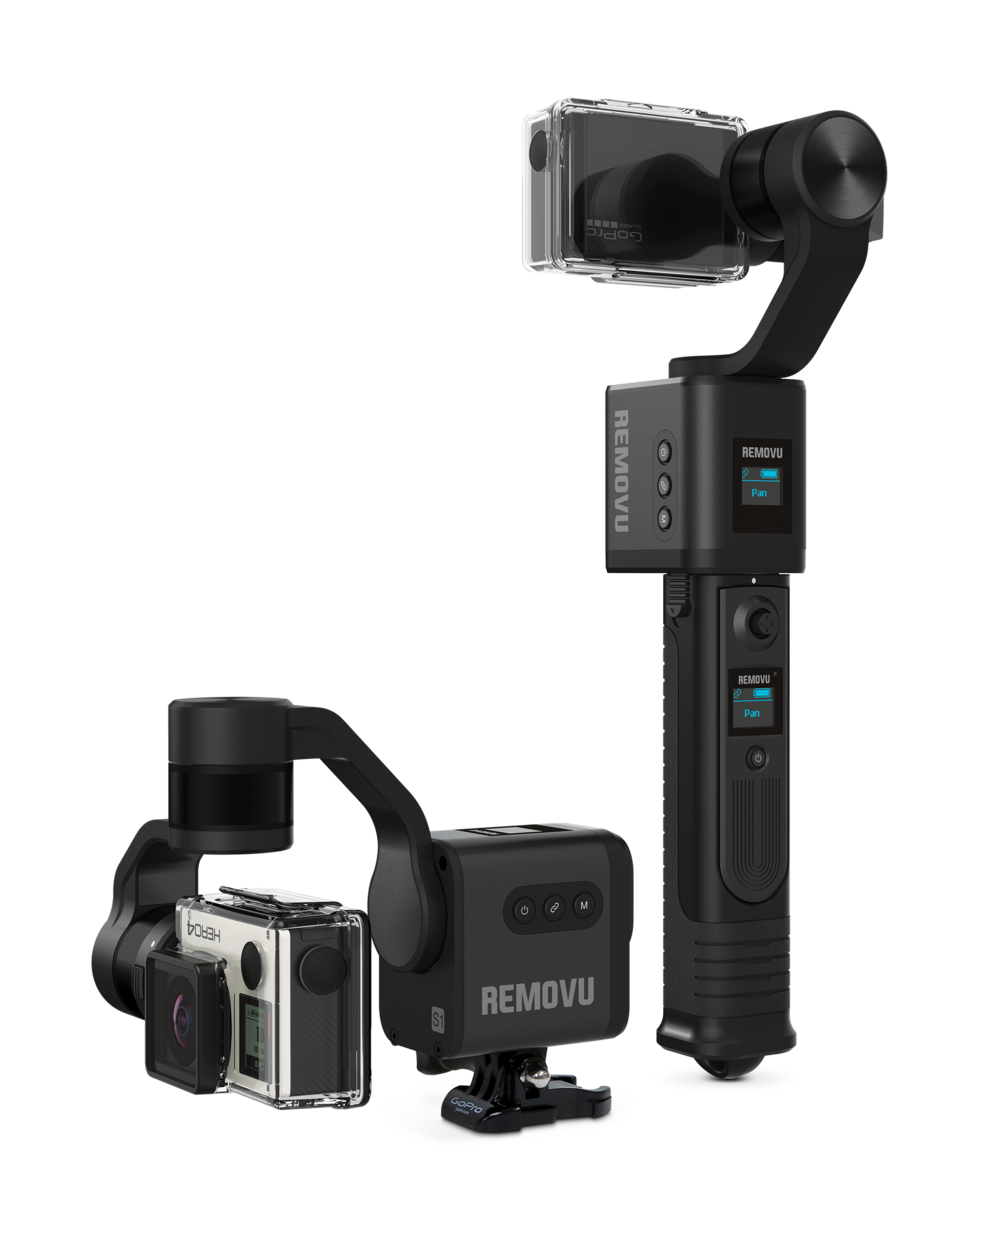 REMOVU S1 - The S1 can be used anywhere where a GoPro can be mounted. A hemelt, a bike or your body, wherever it sticks. The detachable hand grip comes with a wireless joystick remote, which will allow you to control the gimbal from a distance.